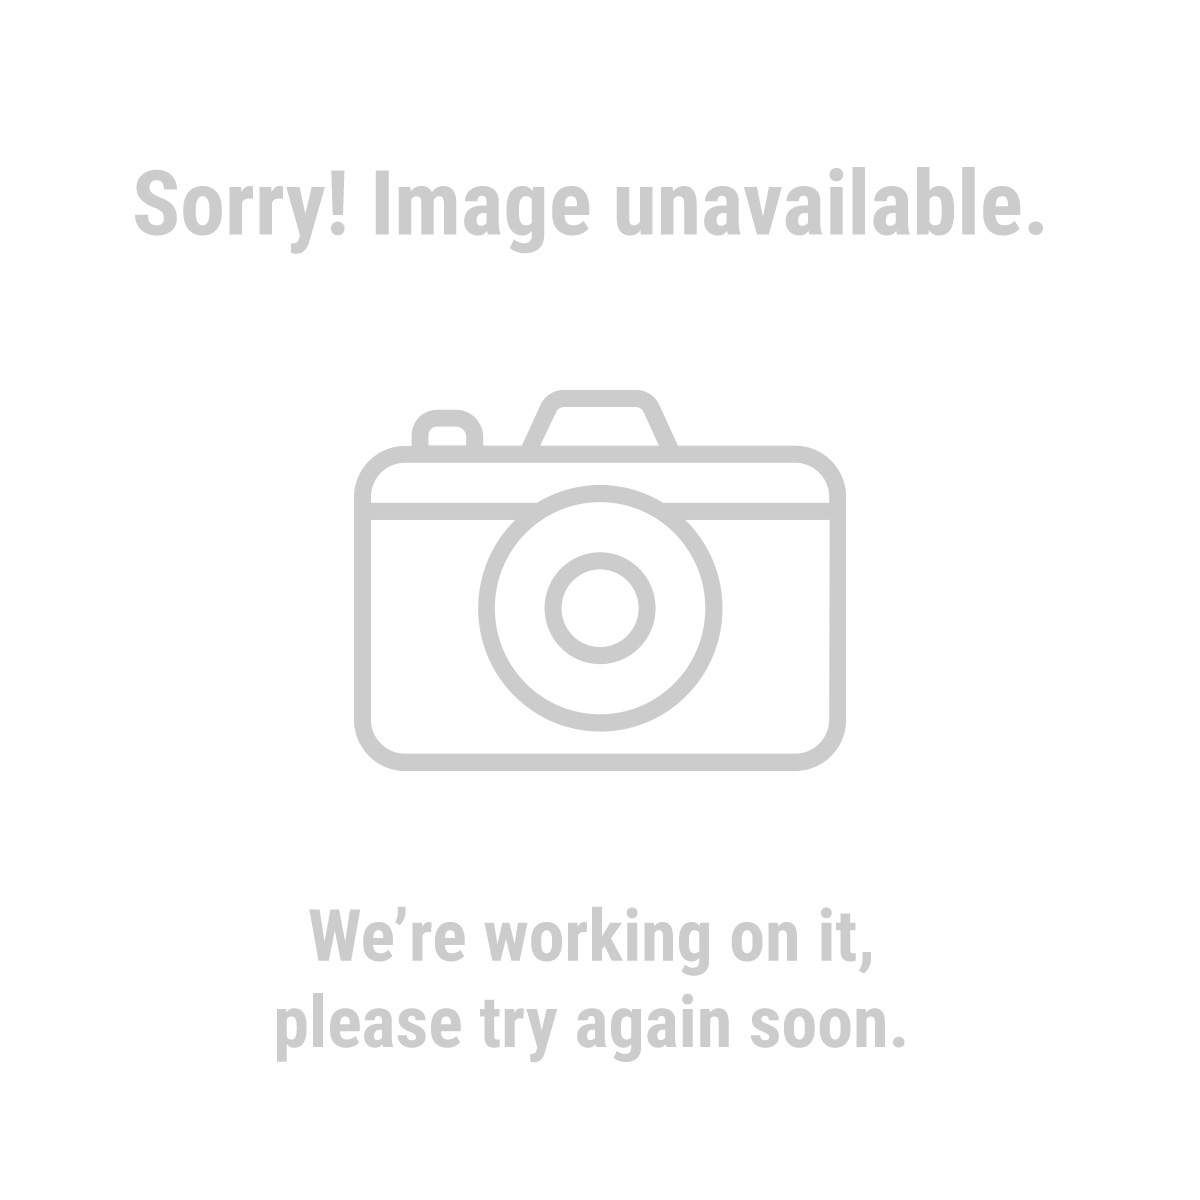 Pittsburgh 93999 11 Piece Metric Quick-Change Nut Driver Set